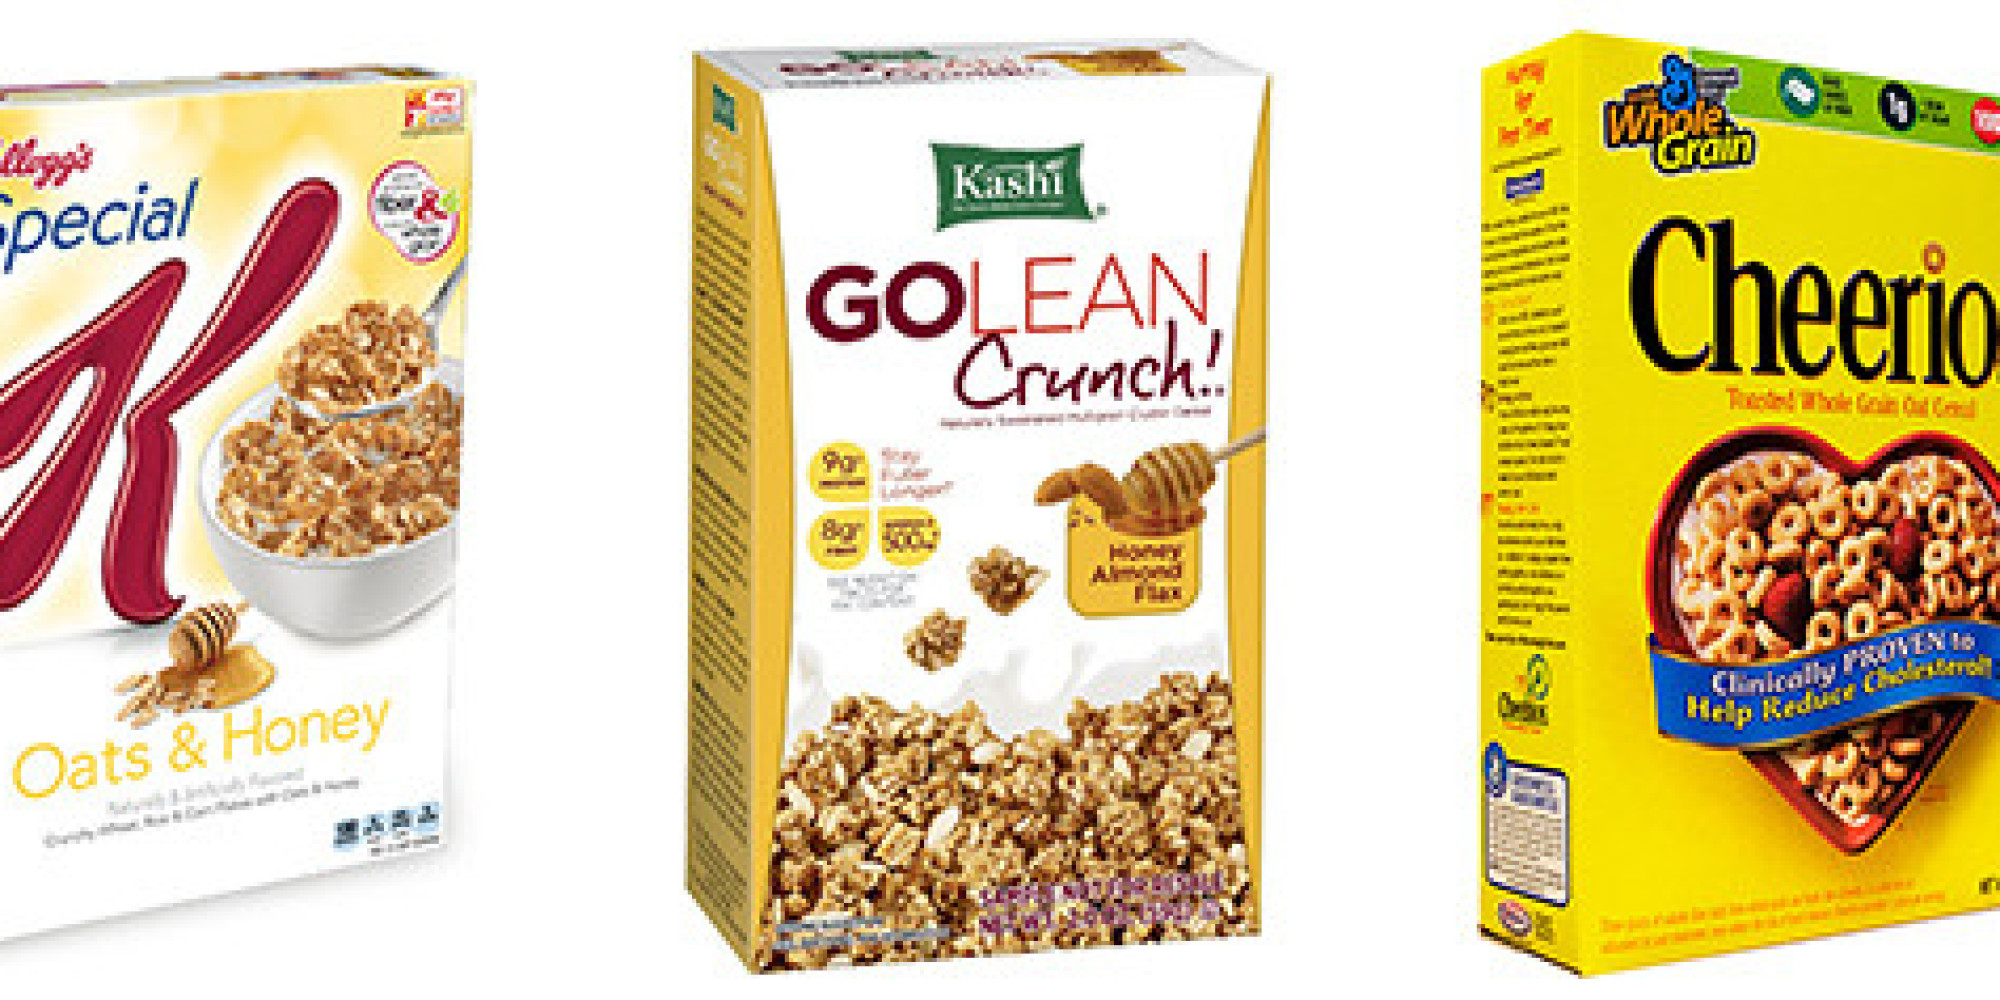 Healthy Cereal: 25 Breakfast Cereals Ranked By Sugar